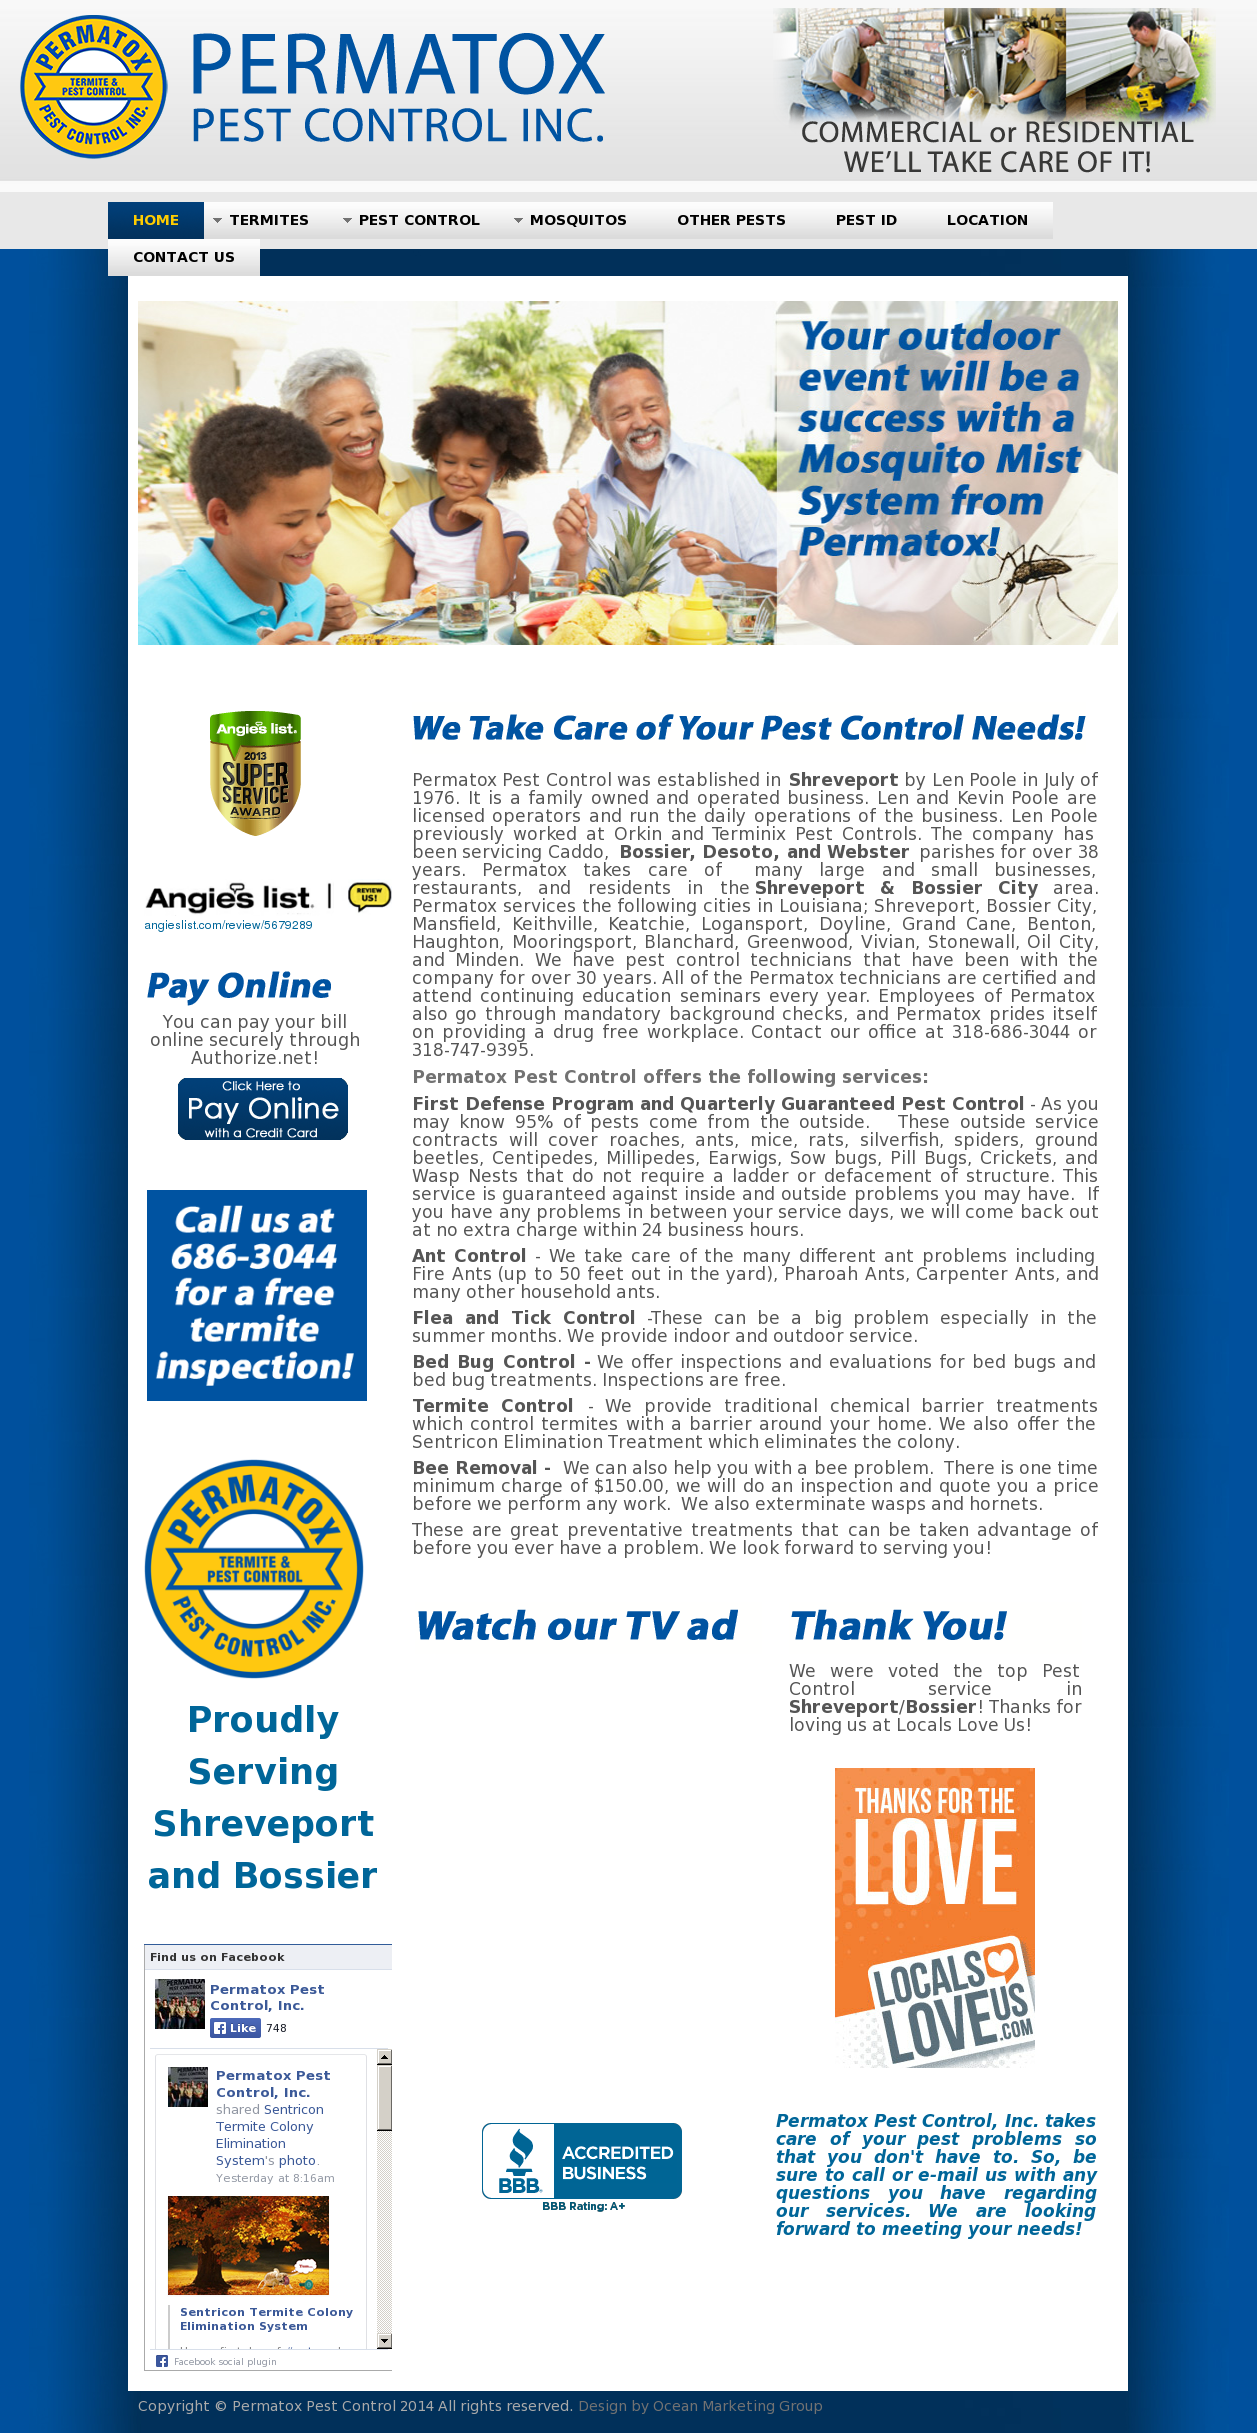 Permatox Pest Control Competitors, Revenue and Employees